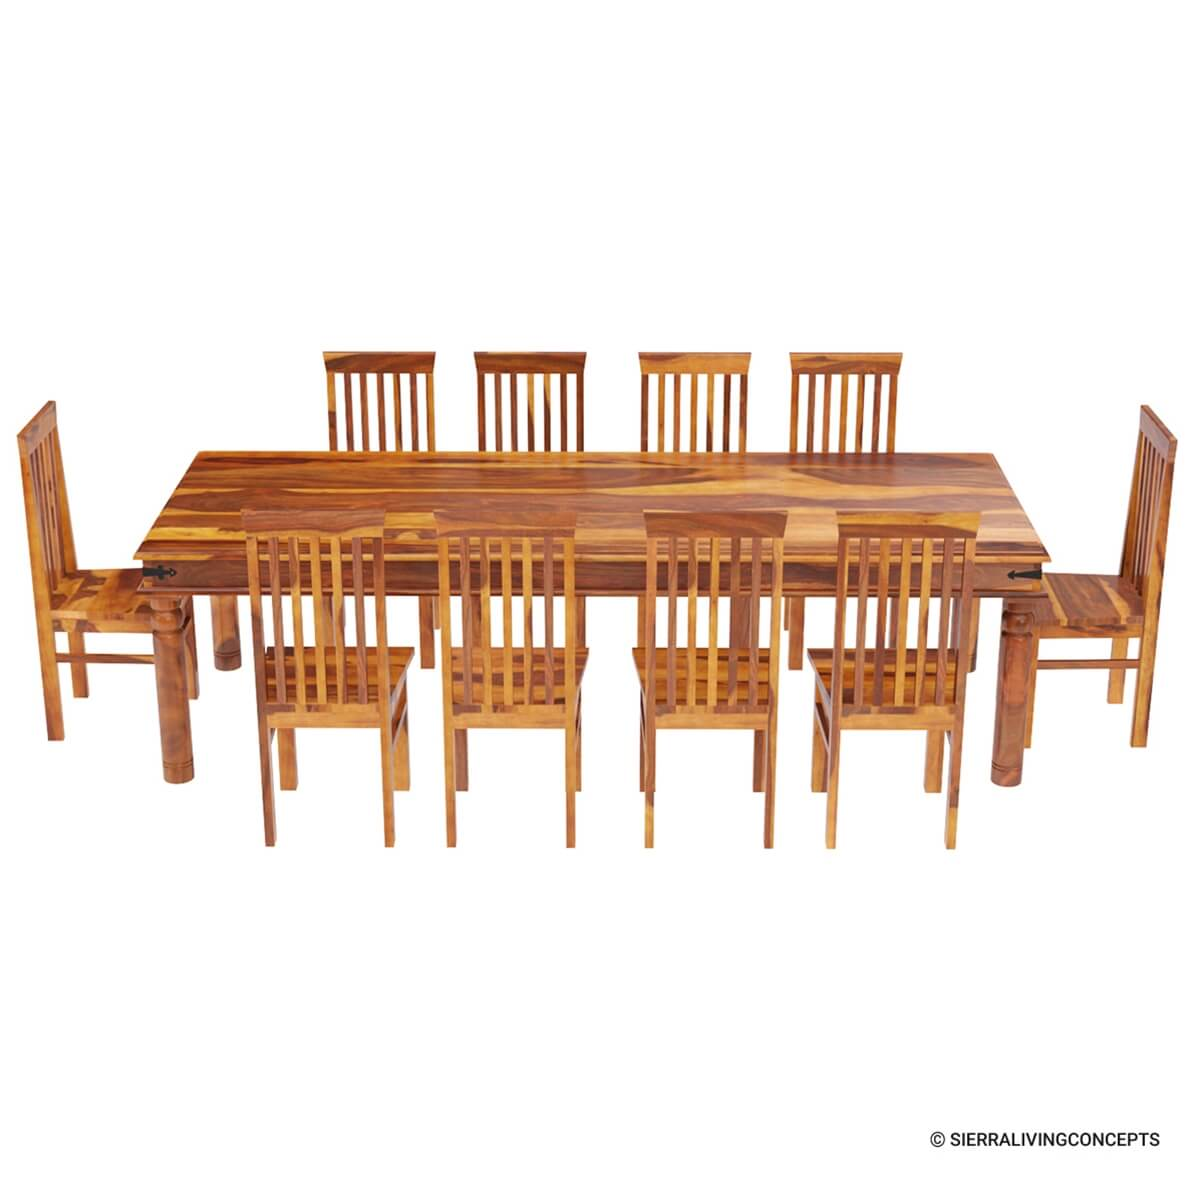 10 chair dining table set maple room chairs rustic lincoln study large for